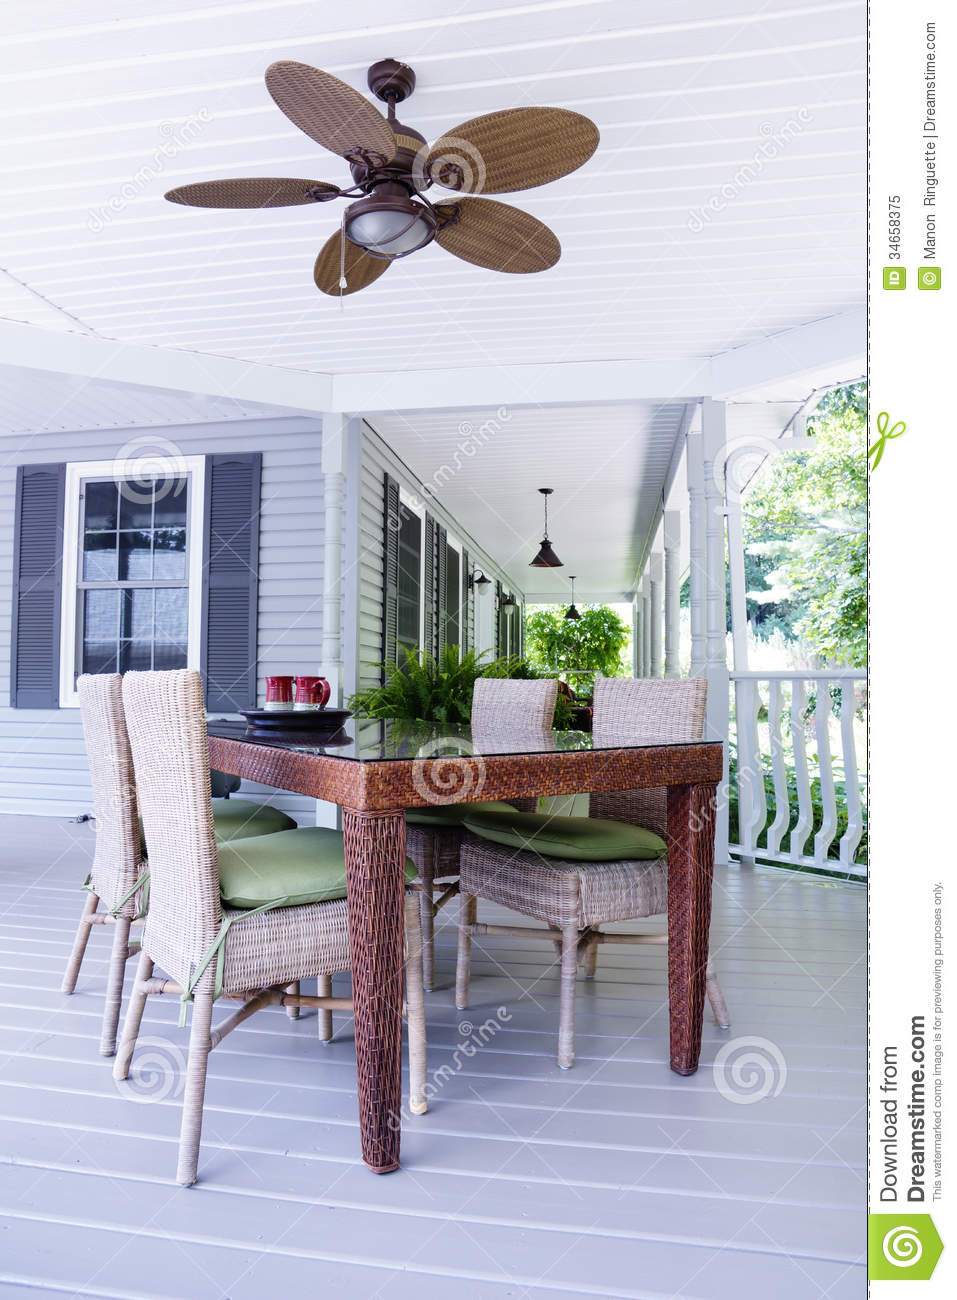 Ceiling Fan Outdoors Royalty Free Stock Photo Image